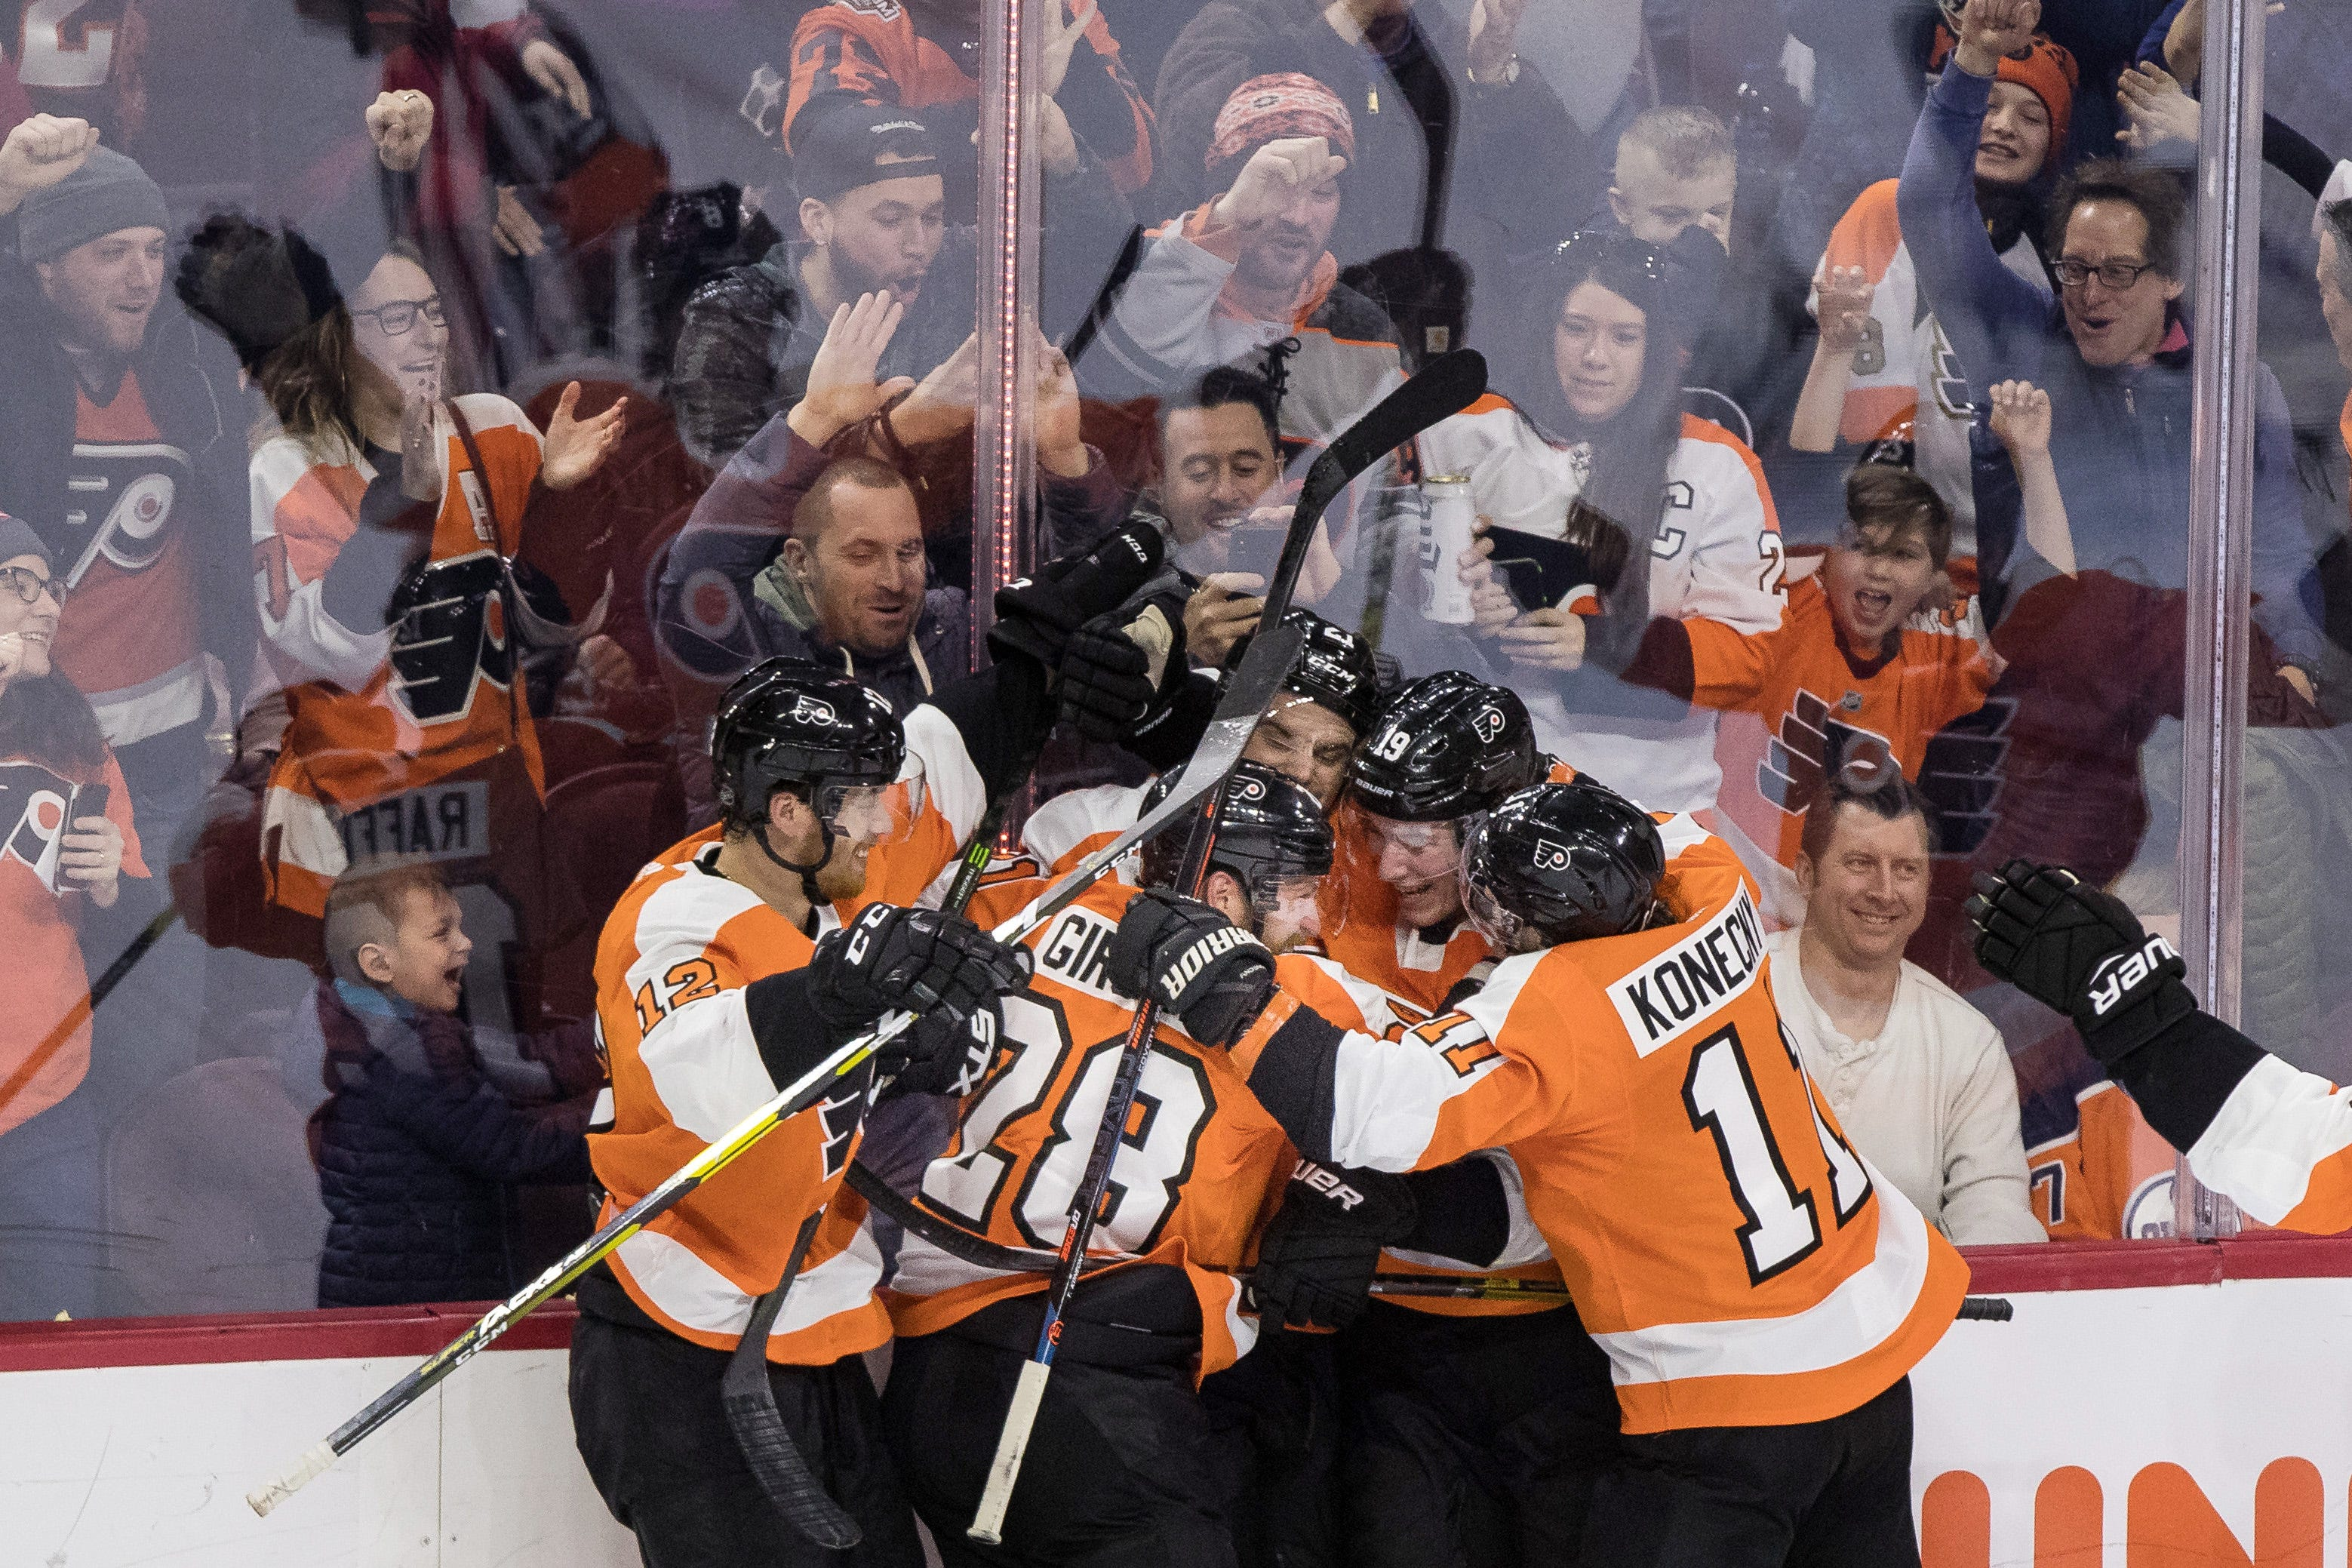 Nolan Patrick scores in OT, Flyers top Oilers 5-4 for seventh win in row